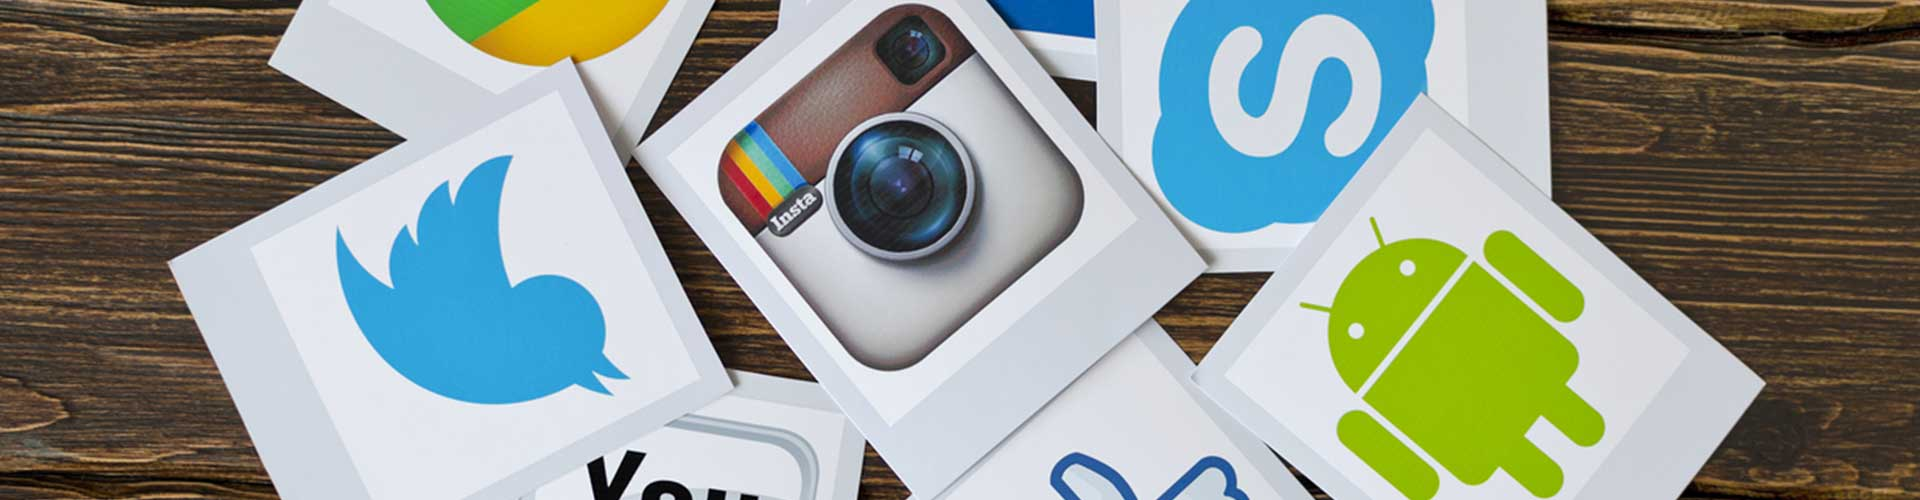 social selling on instagram creating brand identity